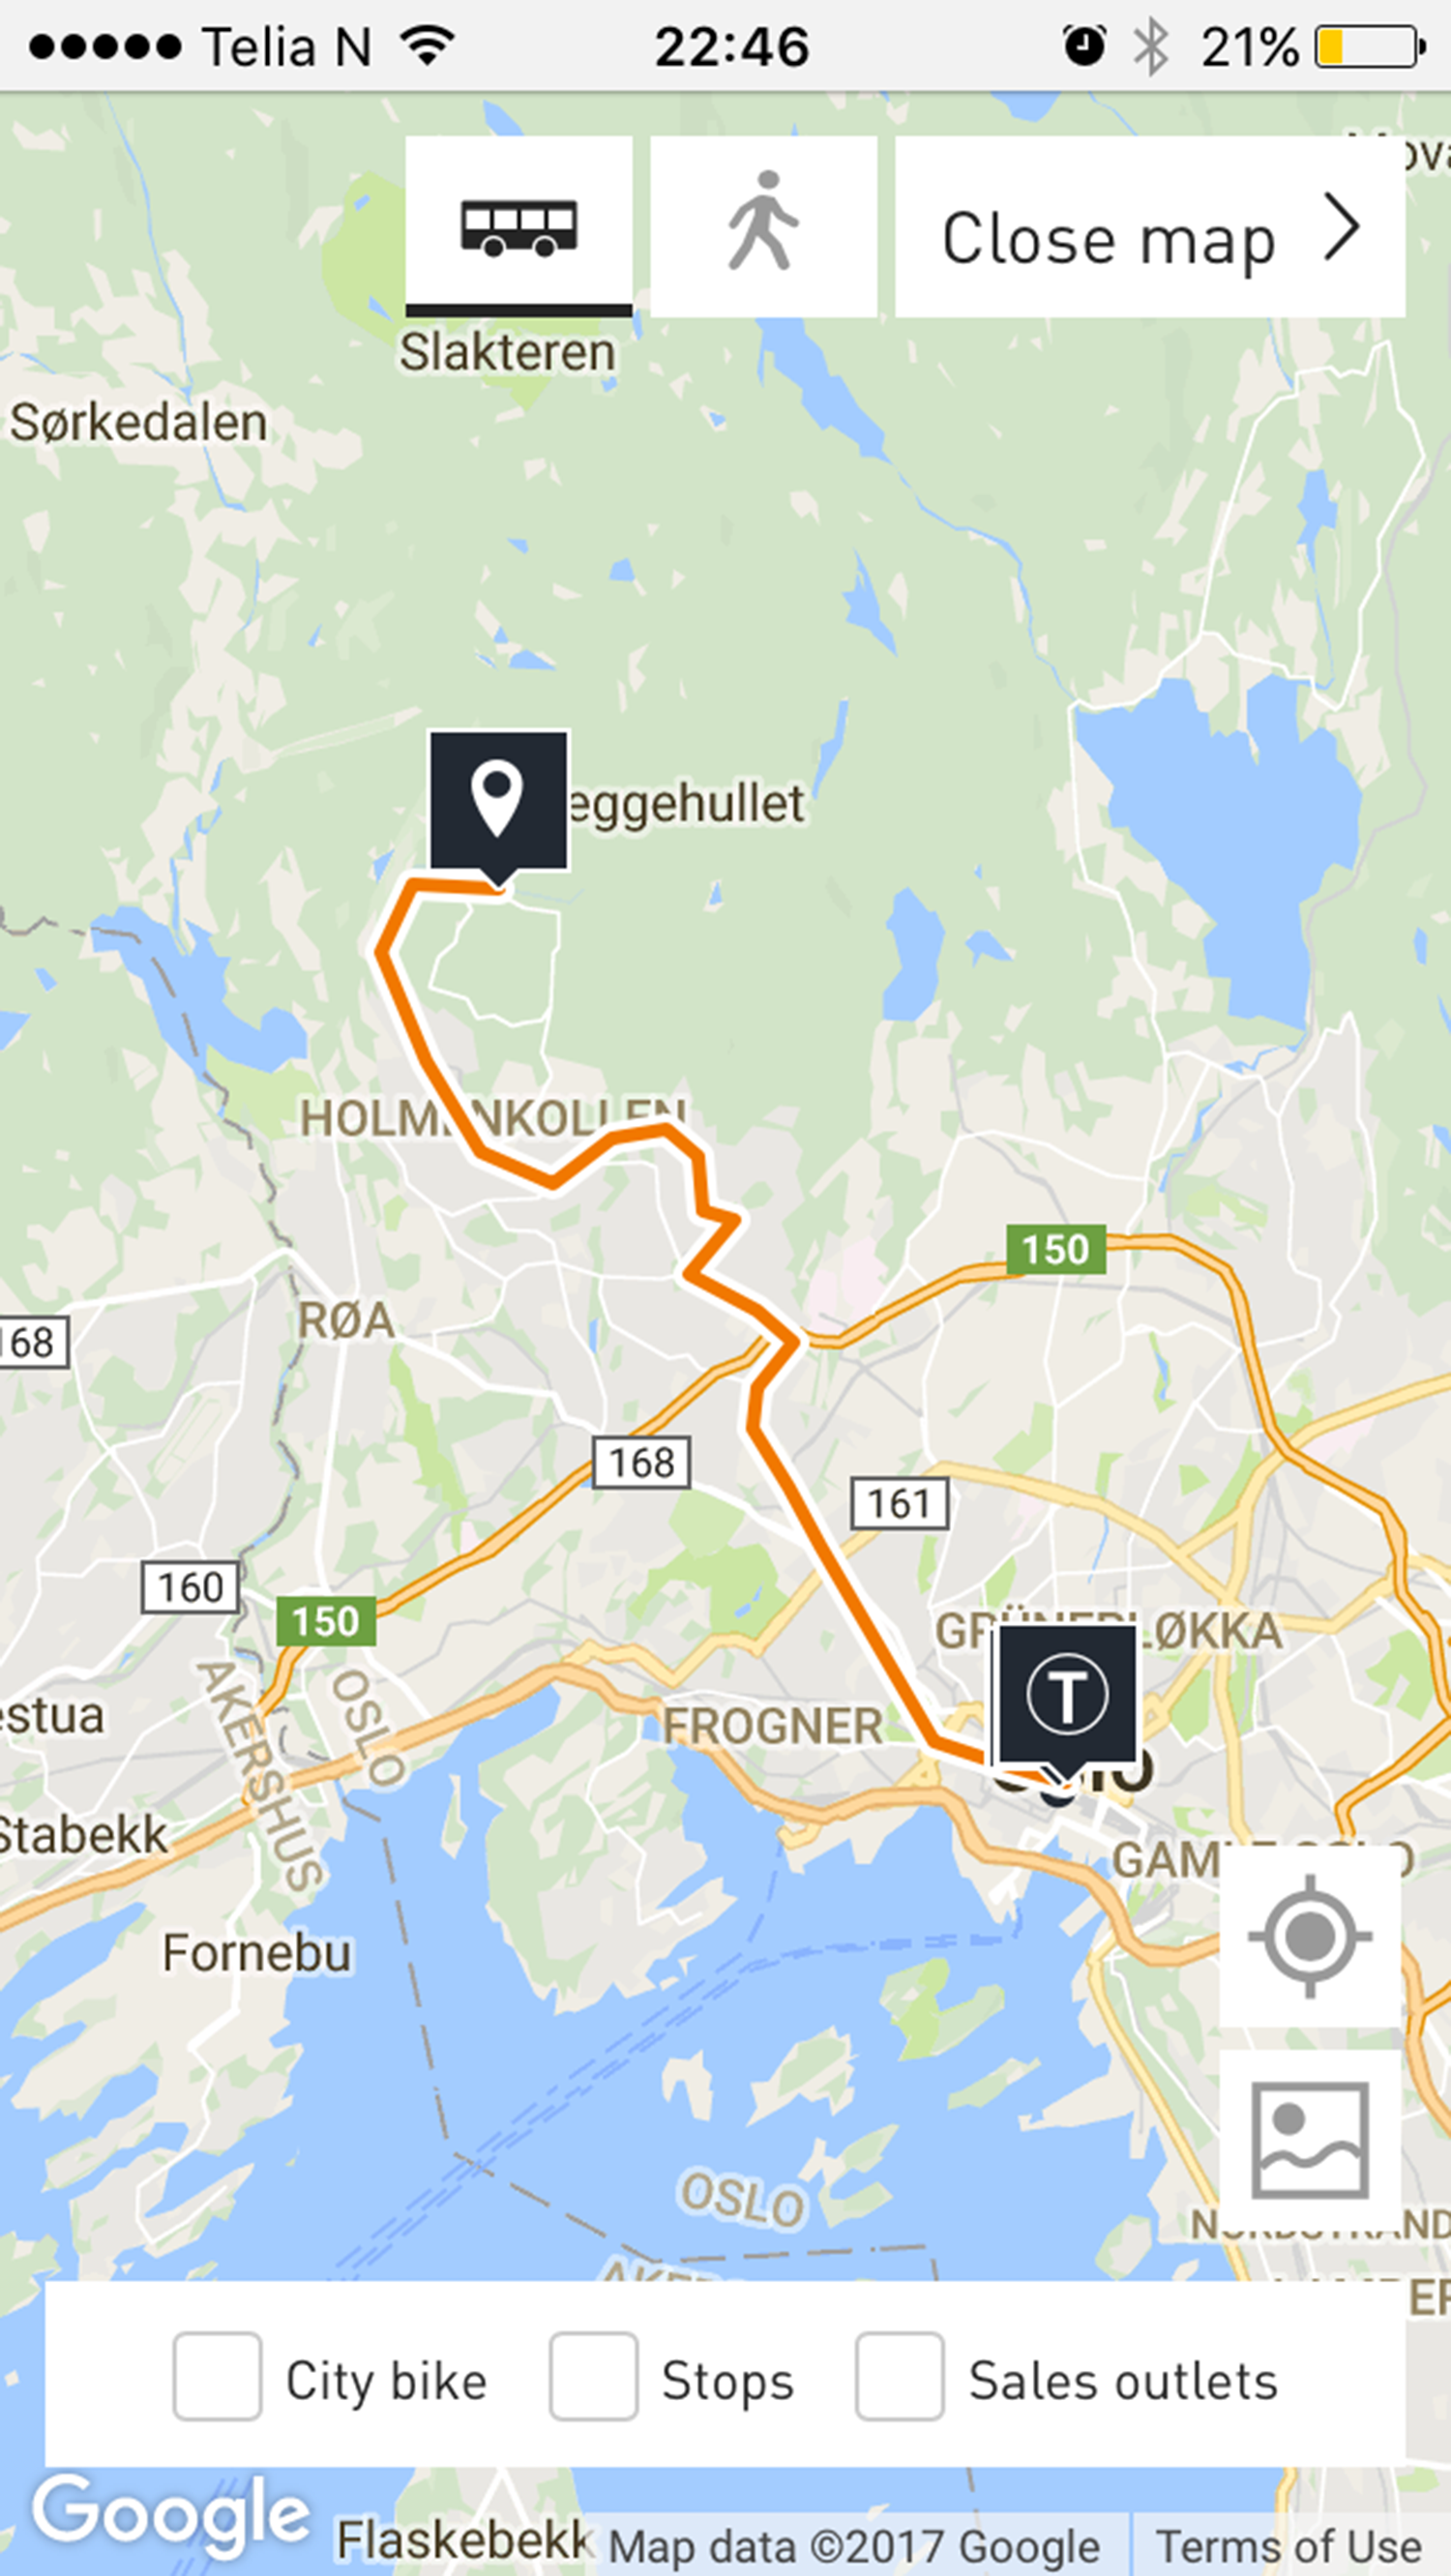 Getting to Oslo Vinterpark